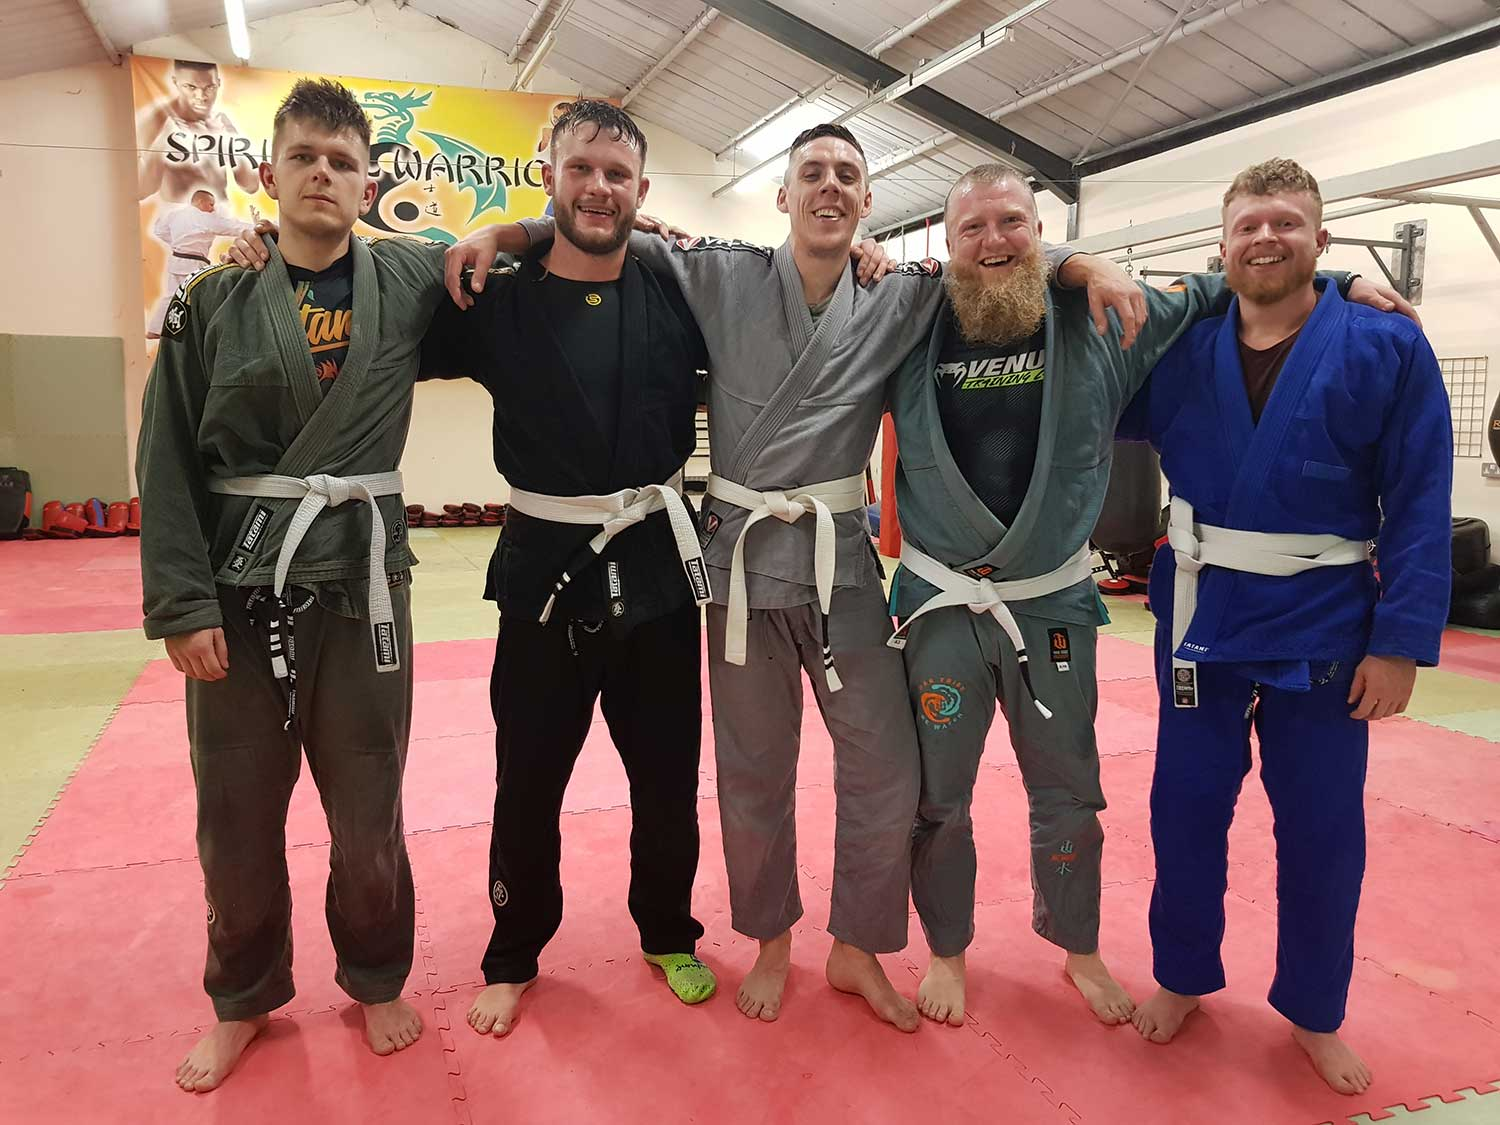 Adult MARTIAL ARTS in Coventry at The Way of the Spiritual Warrior Dojo